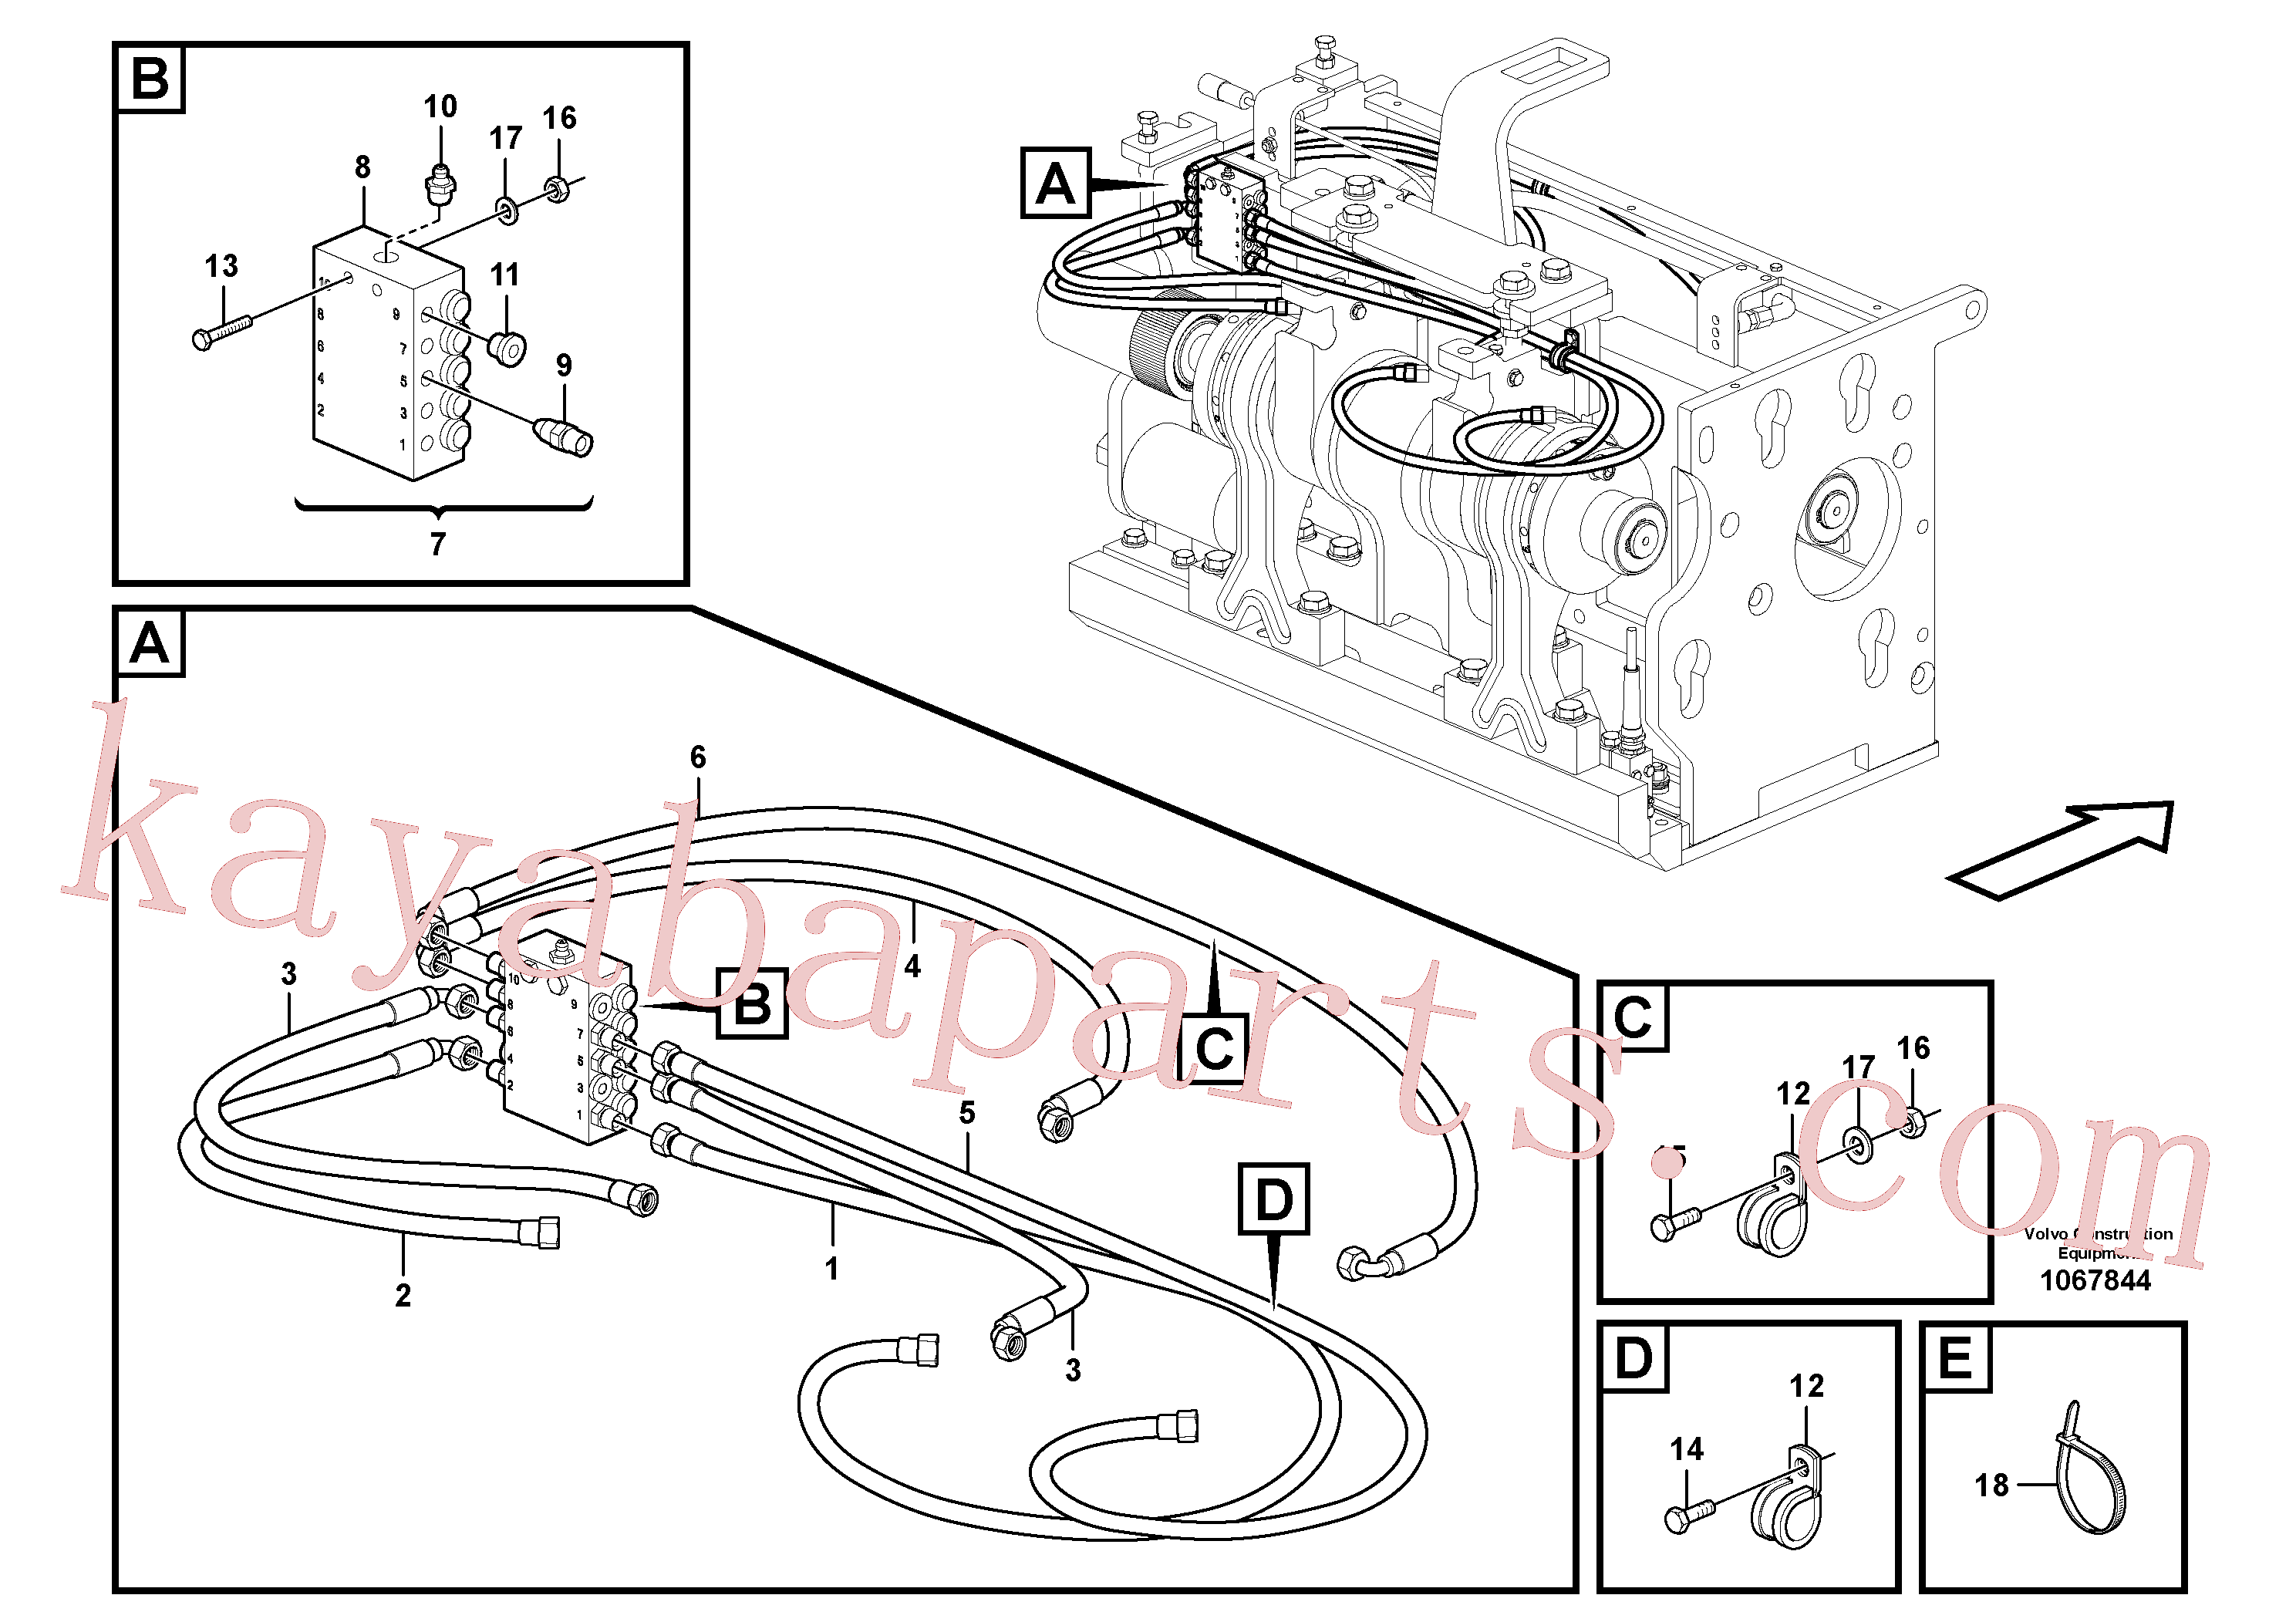 RM54701305 for Volvo Lubrication for extension(1067844 assembly)